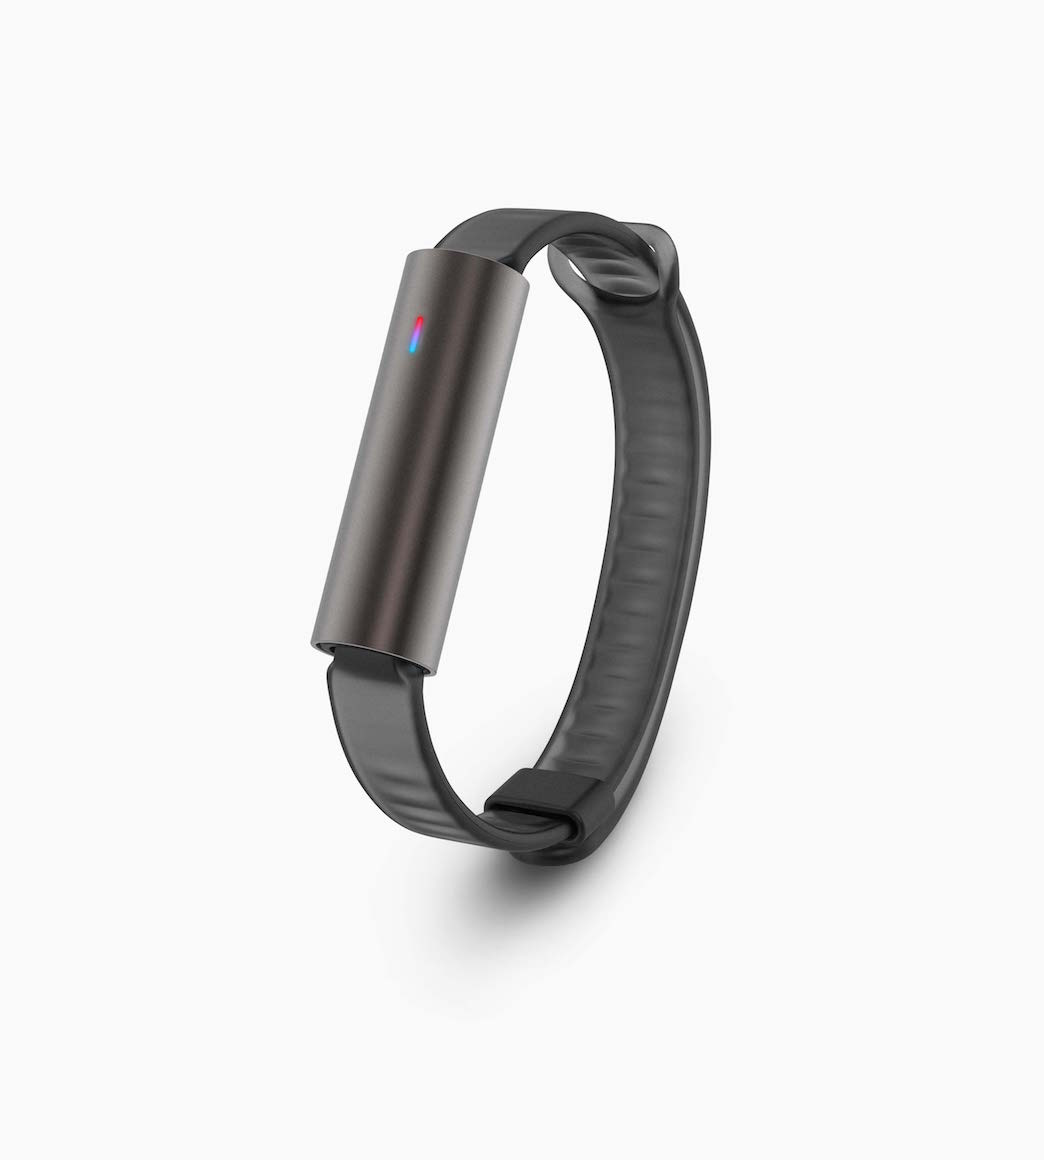 Misfit Ray Fitness Trackers